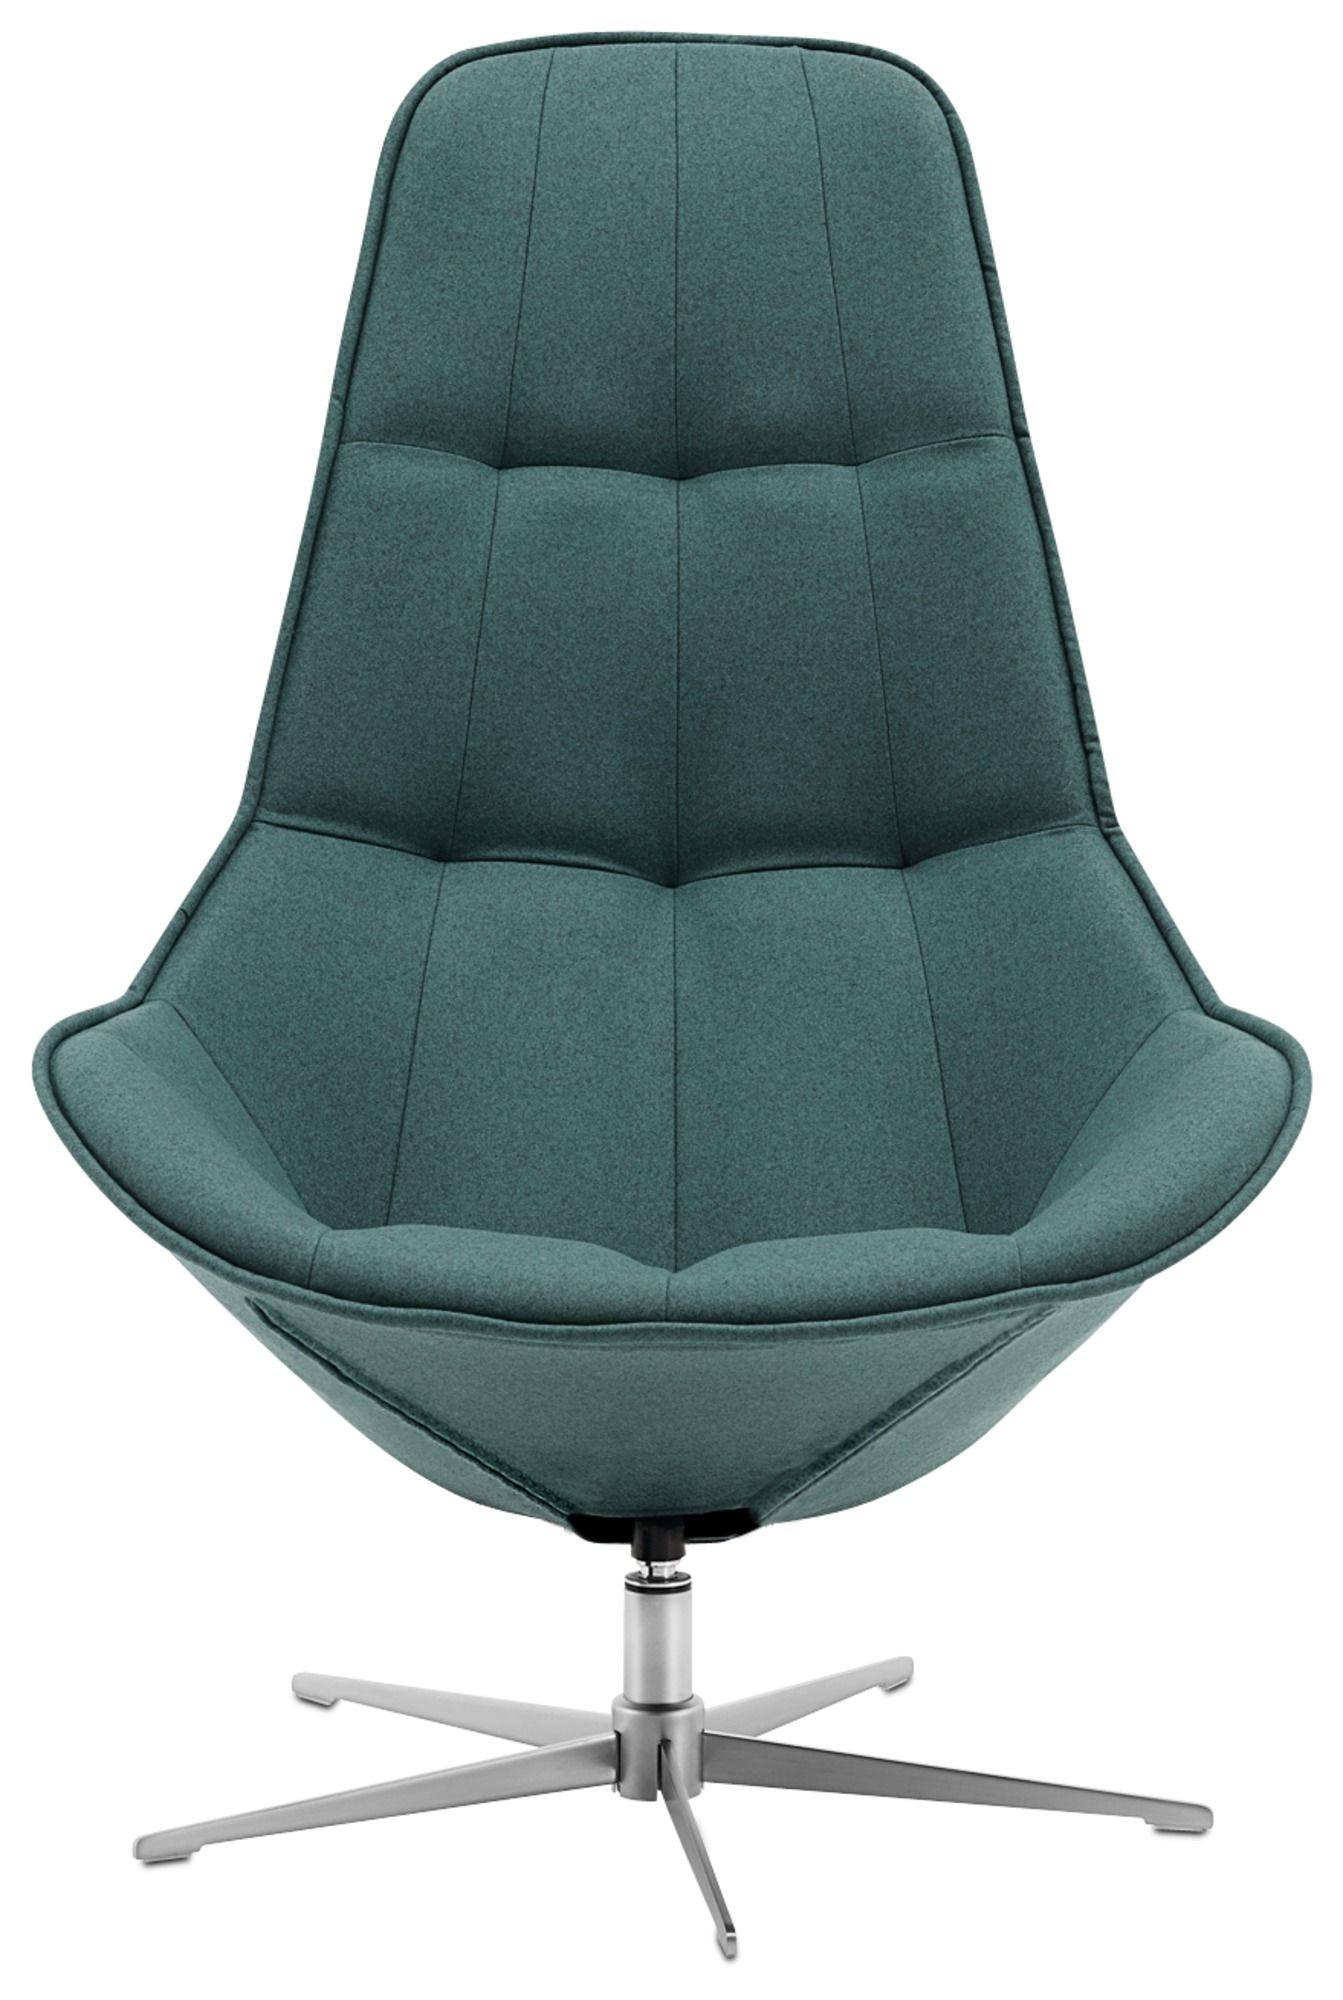 Modern Armchairs Contemporary Armchairs Boconcept Shop Chair Dinning Room Chairs Chair Style